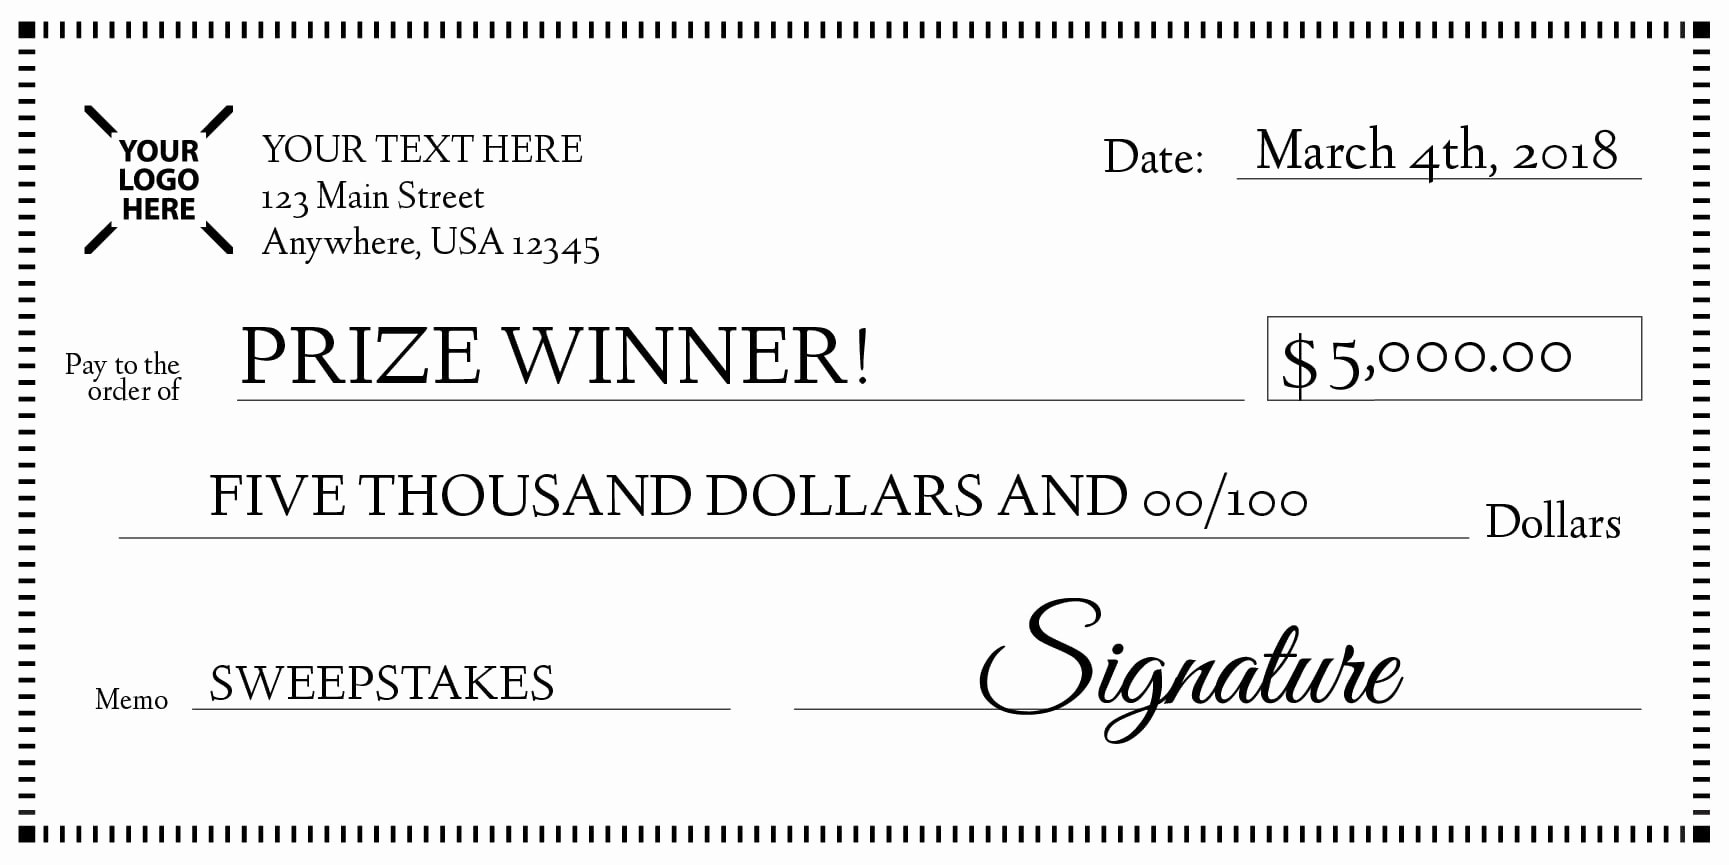 Oversized Check Template Free Luxury Signage 101 Giant Check Uses and Templates